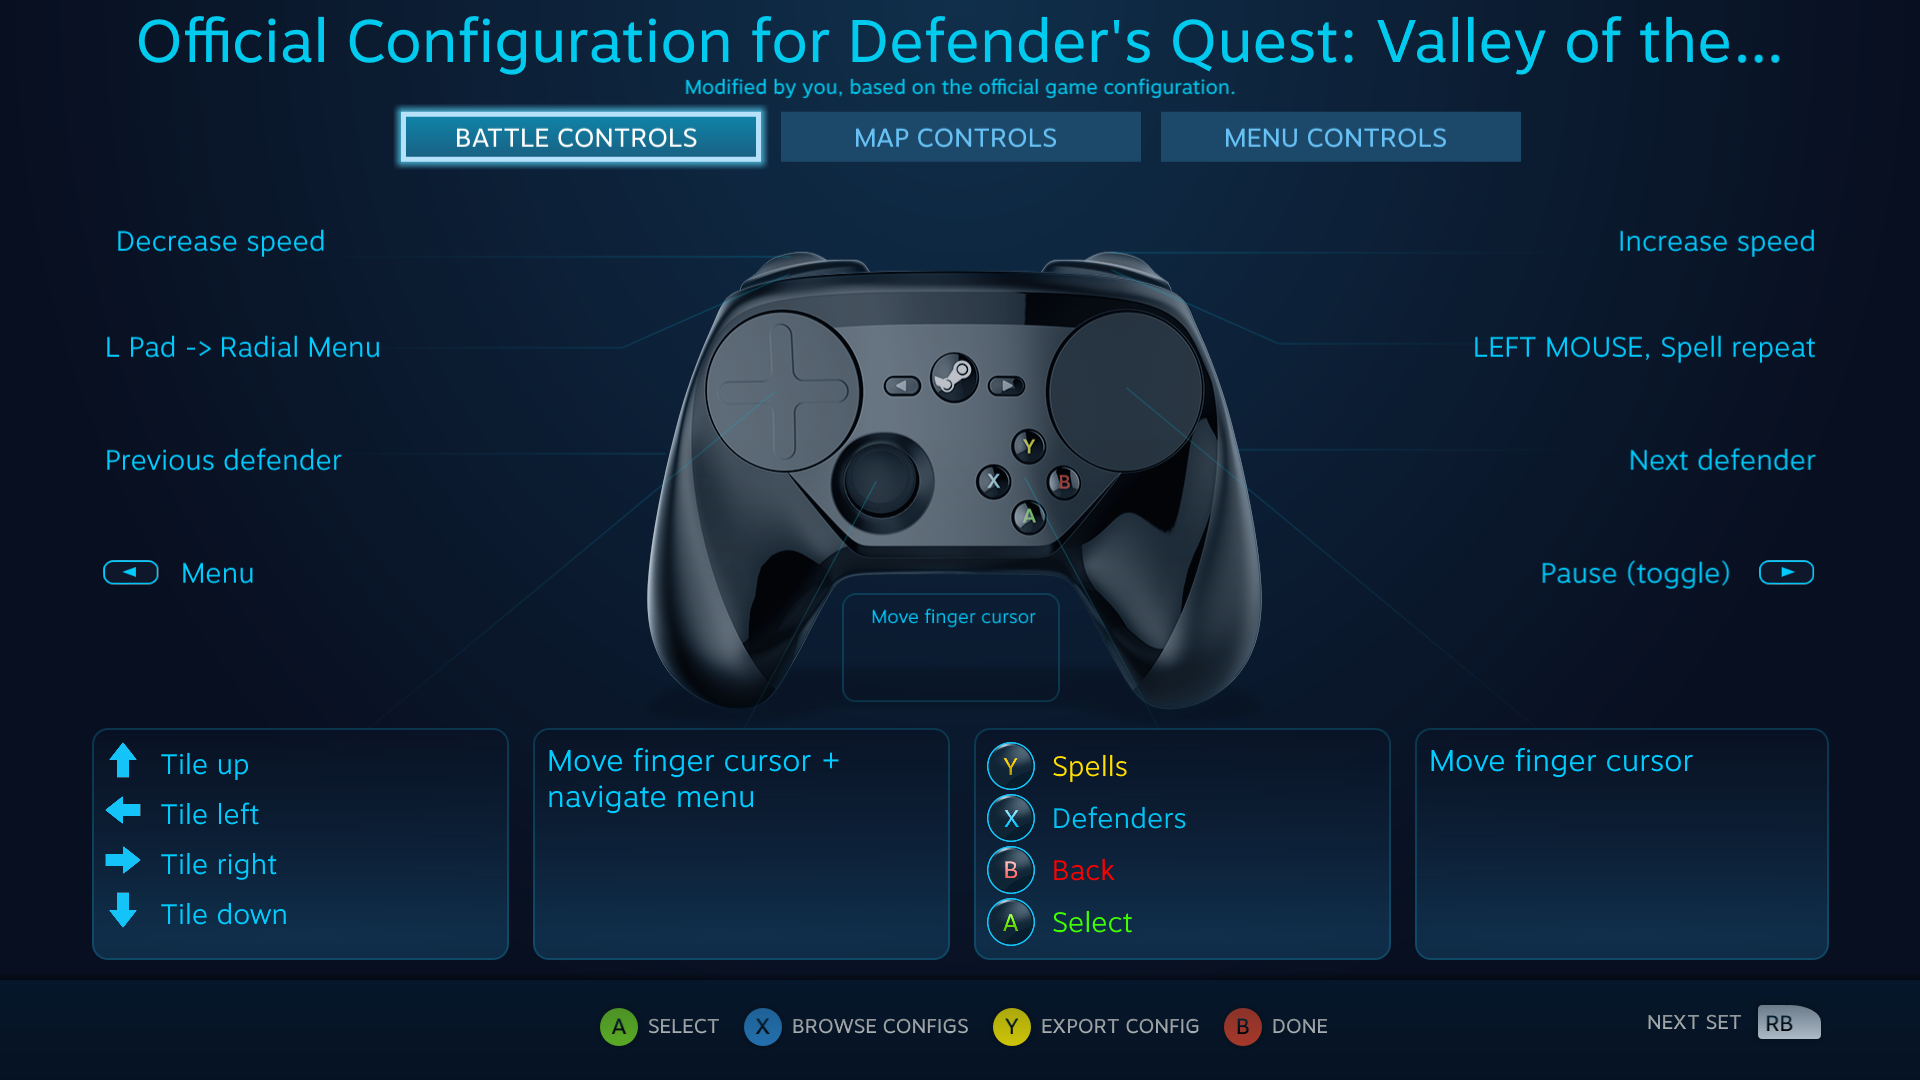 Defender's Quest Steam Controller Configuration screen -- Battle Actions